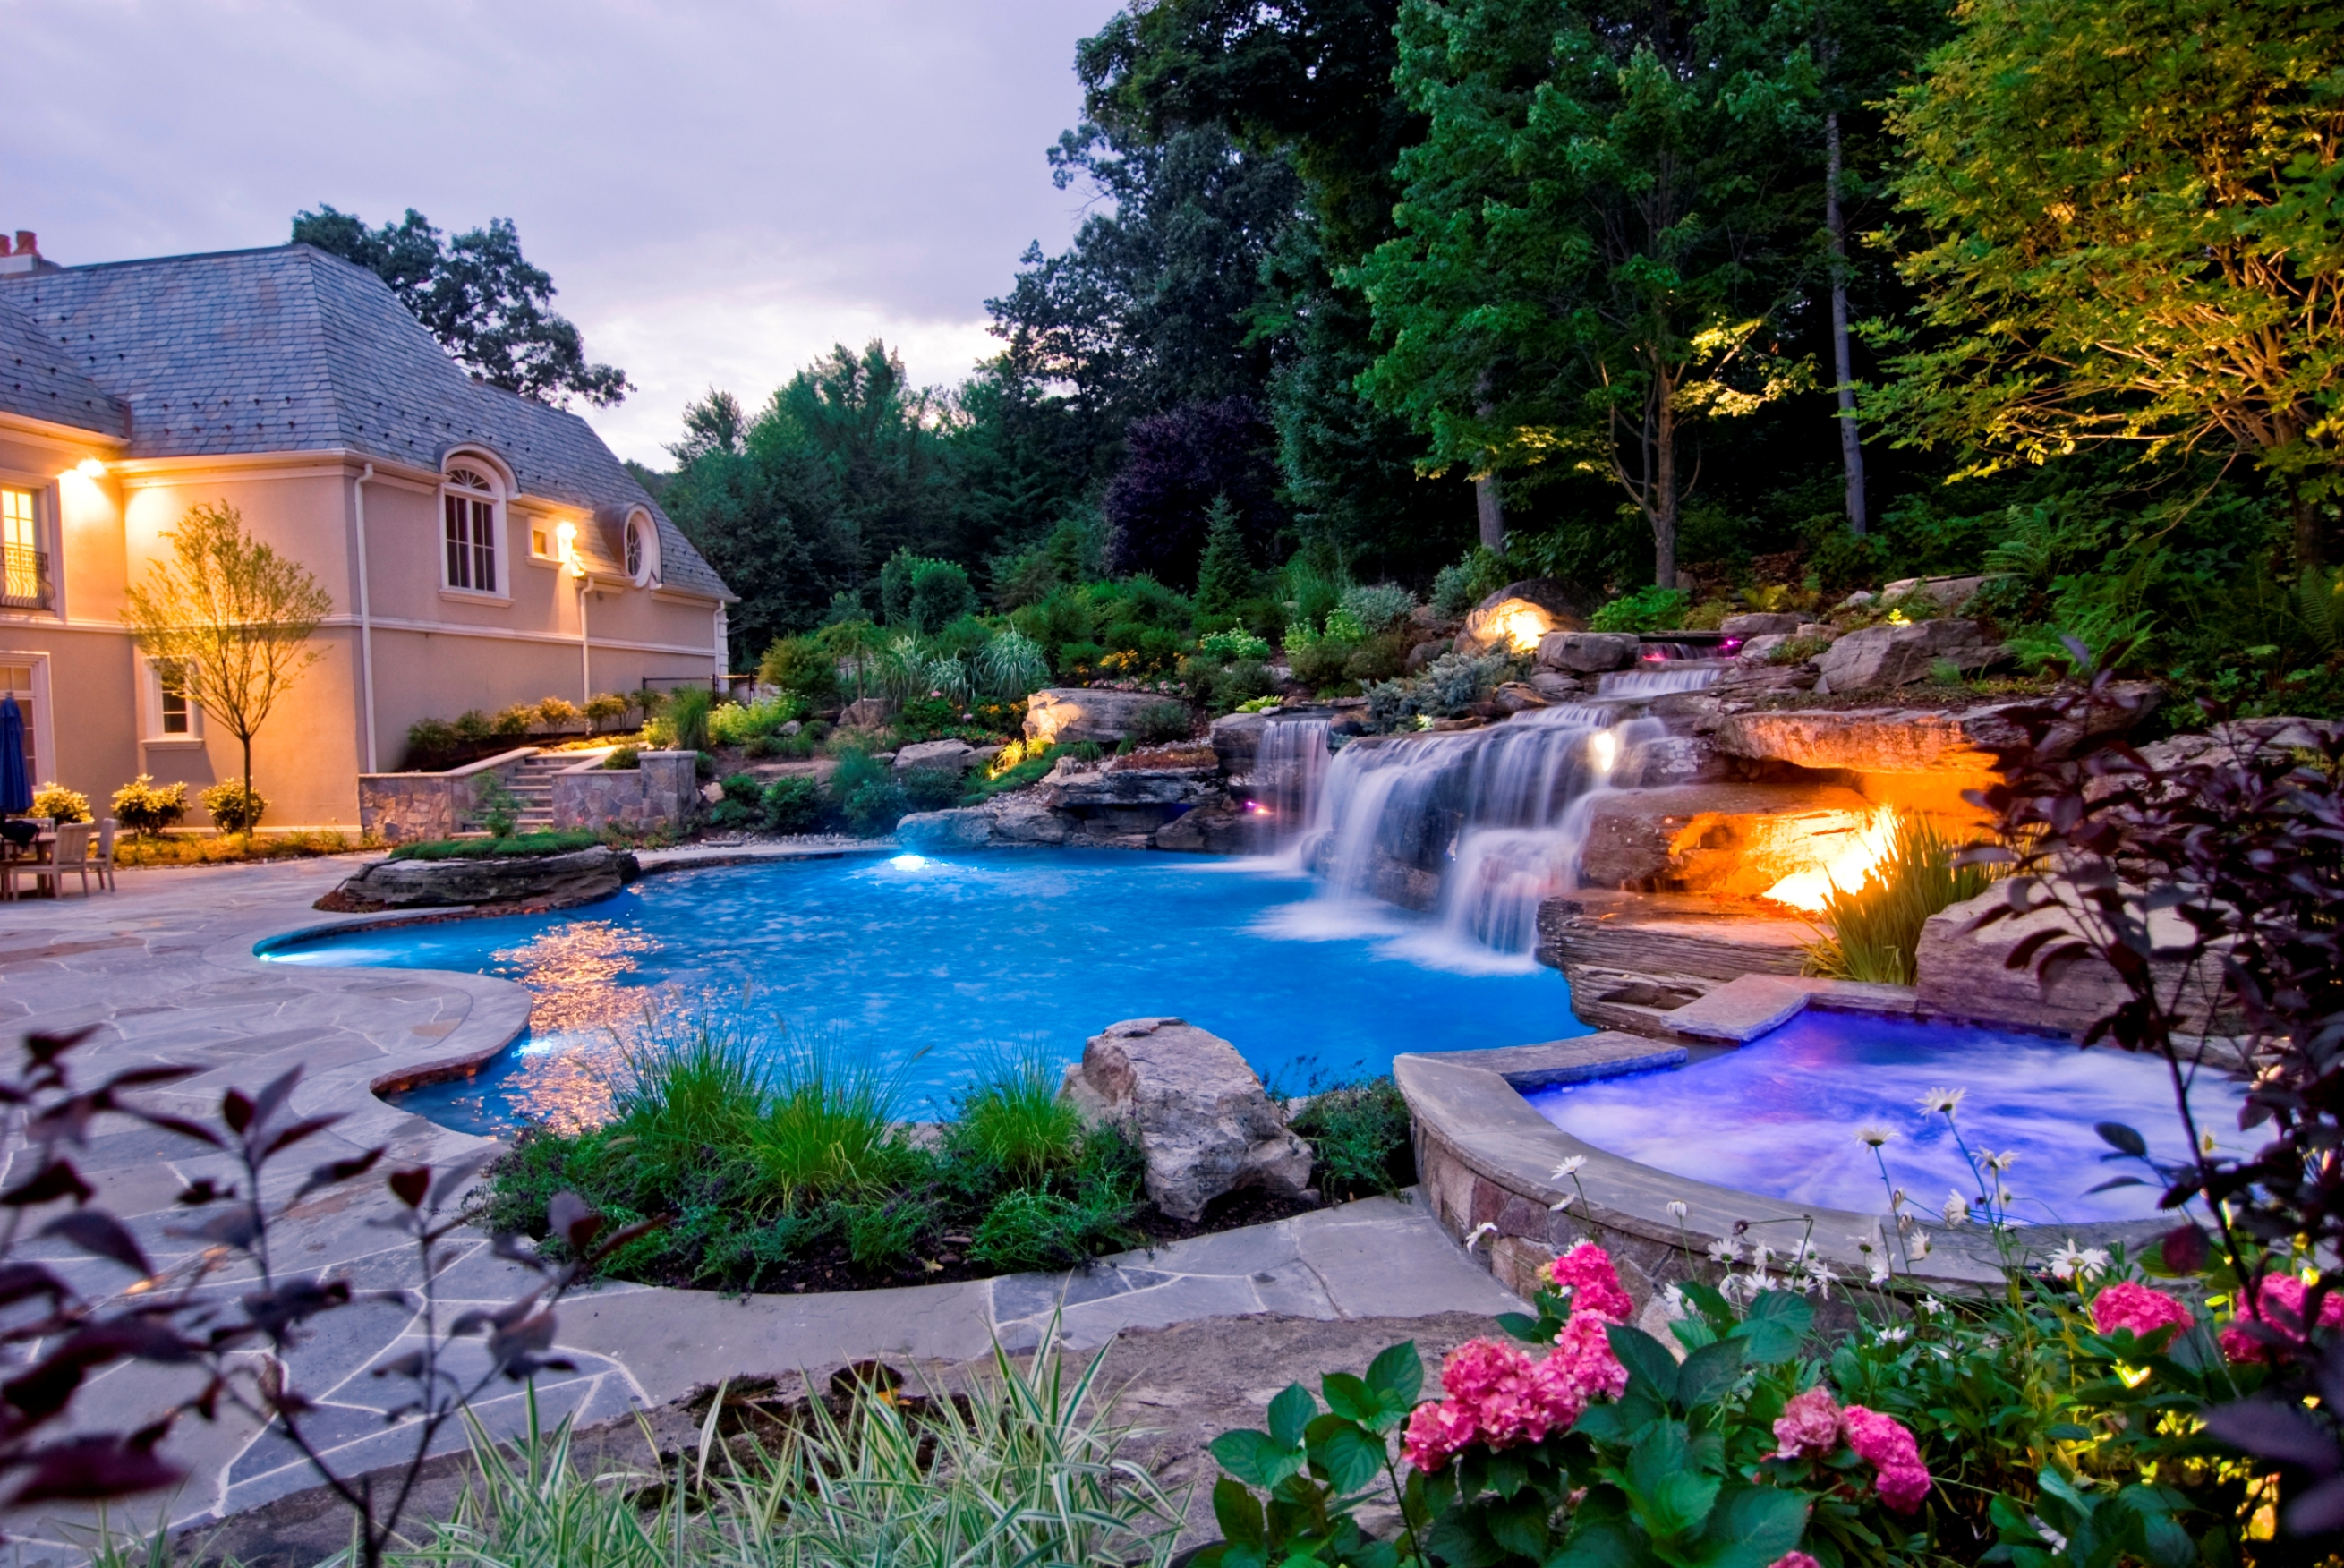 Pictures Of Beautiful Backyard Pools : beautiful backyards with pools back yard swimming pools small condo